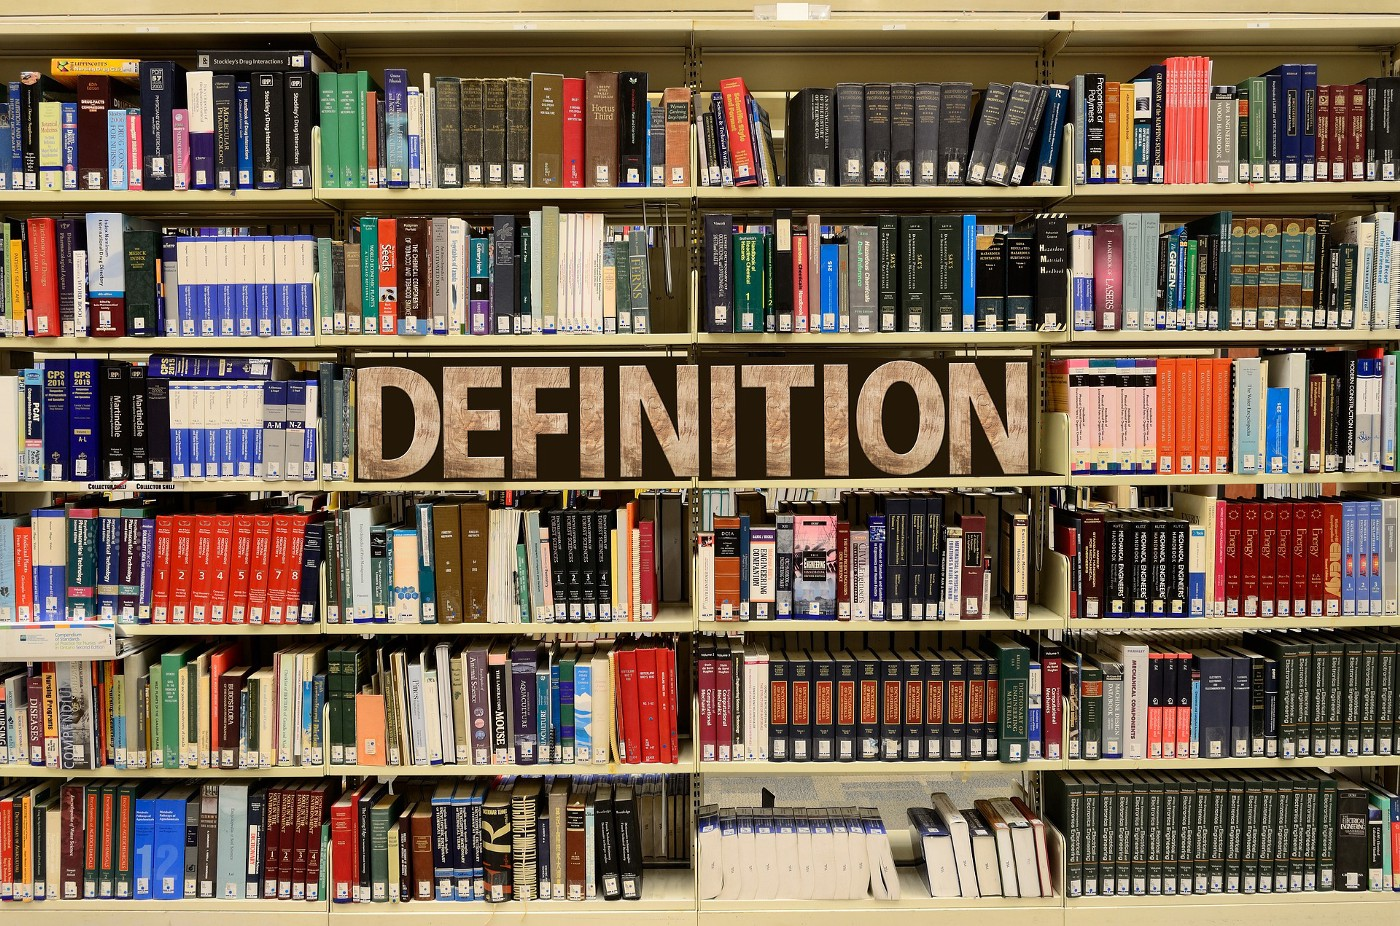 A bookshelf with books and the word definition — referring to the need to define the term innovation.